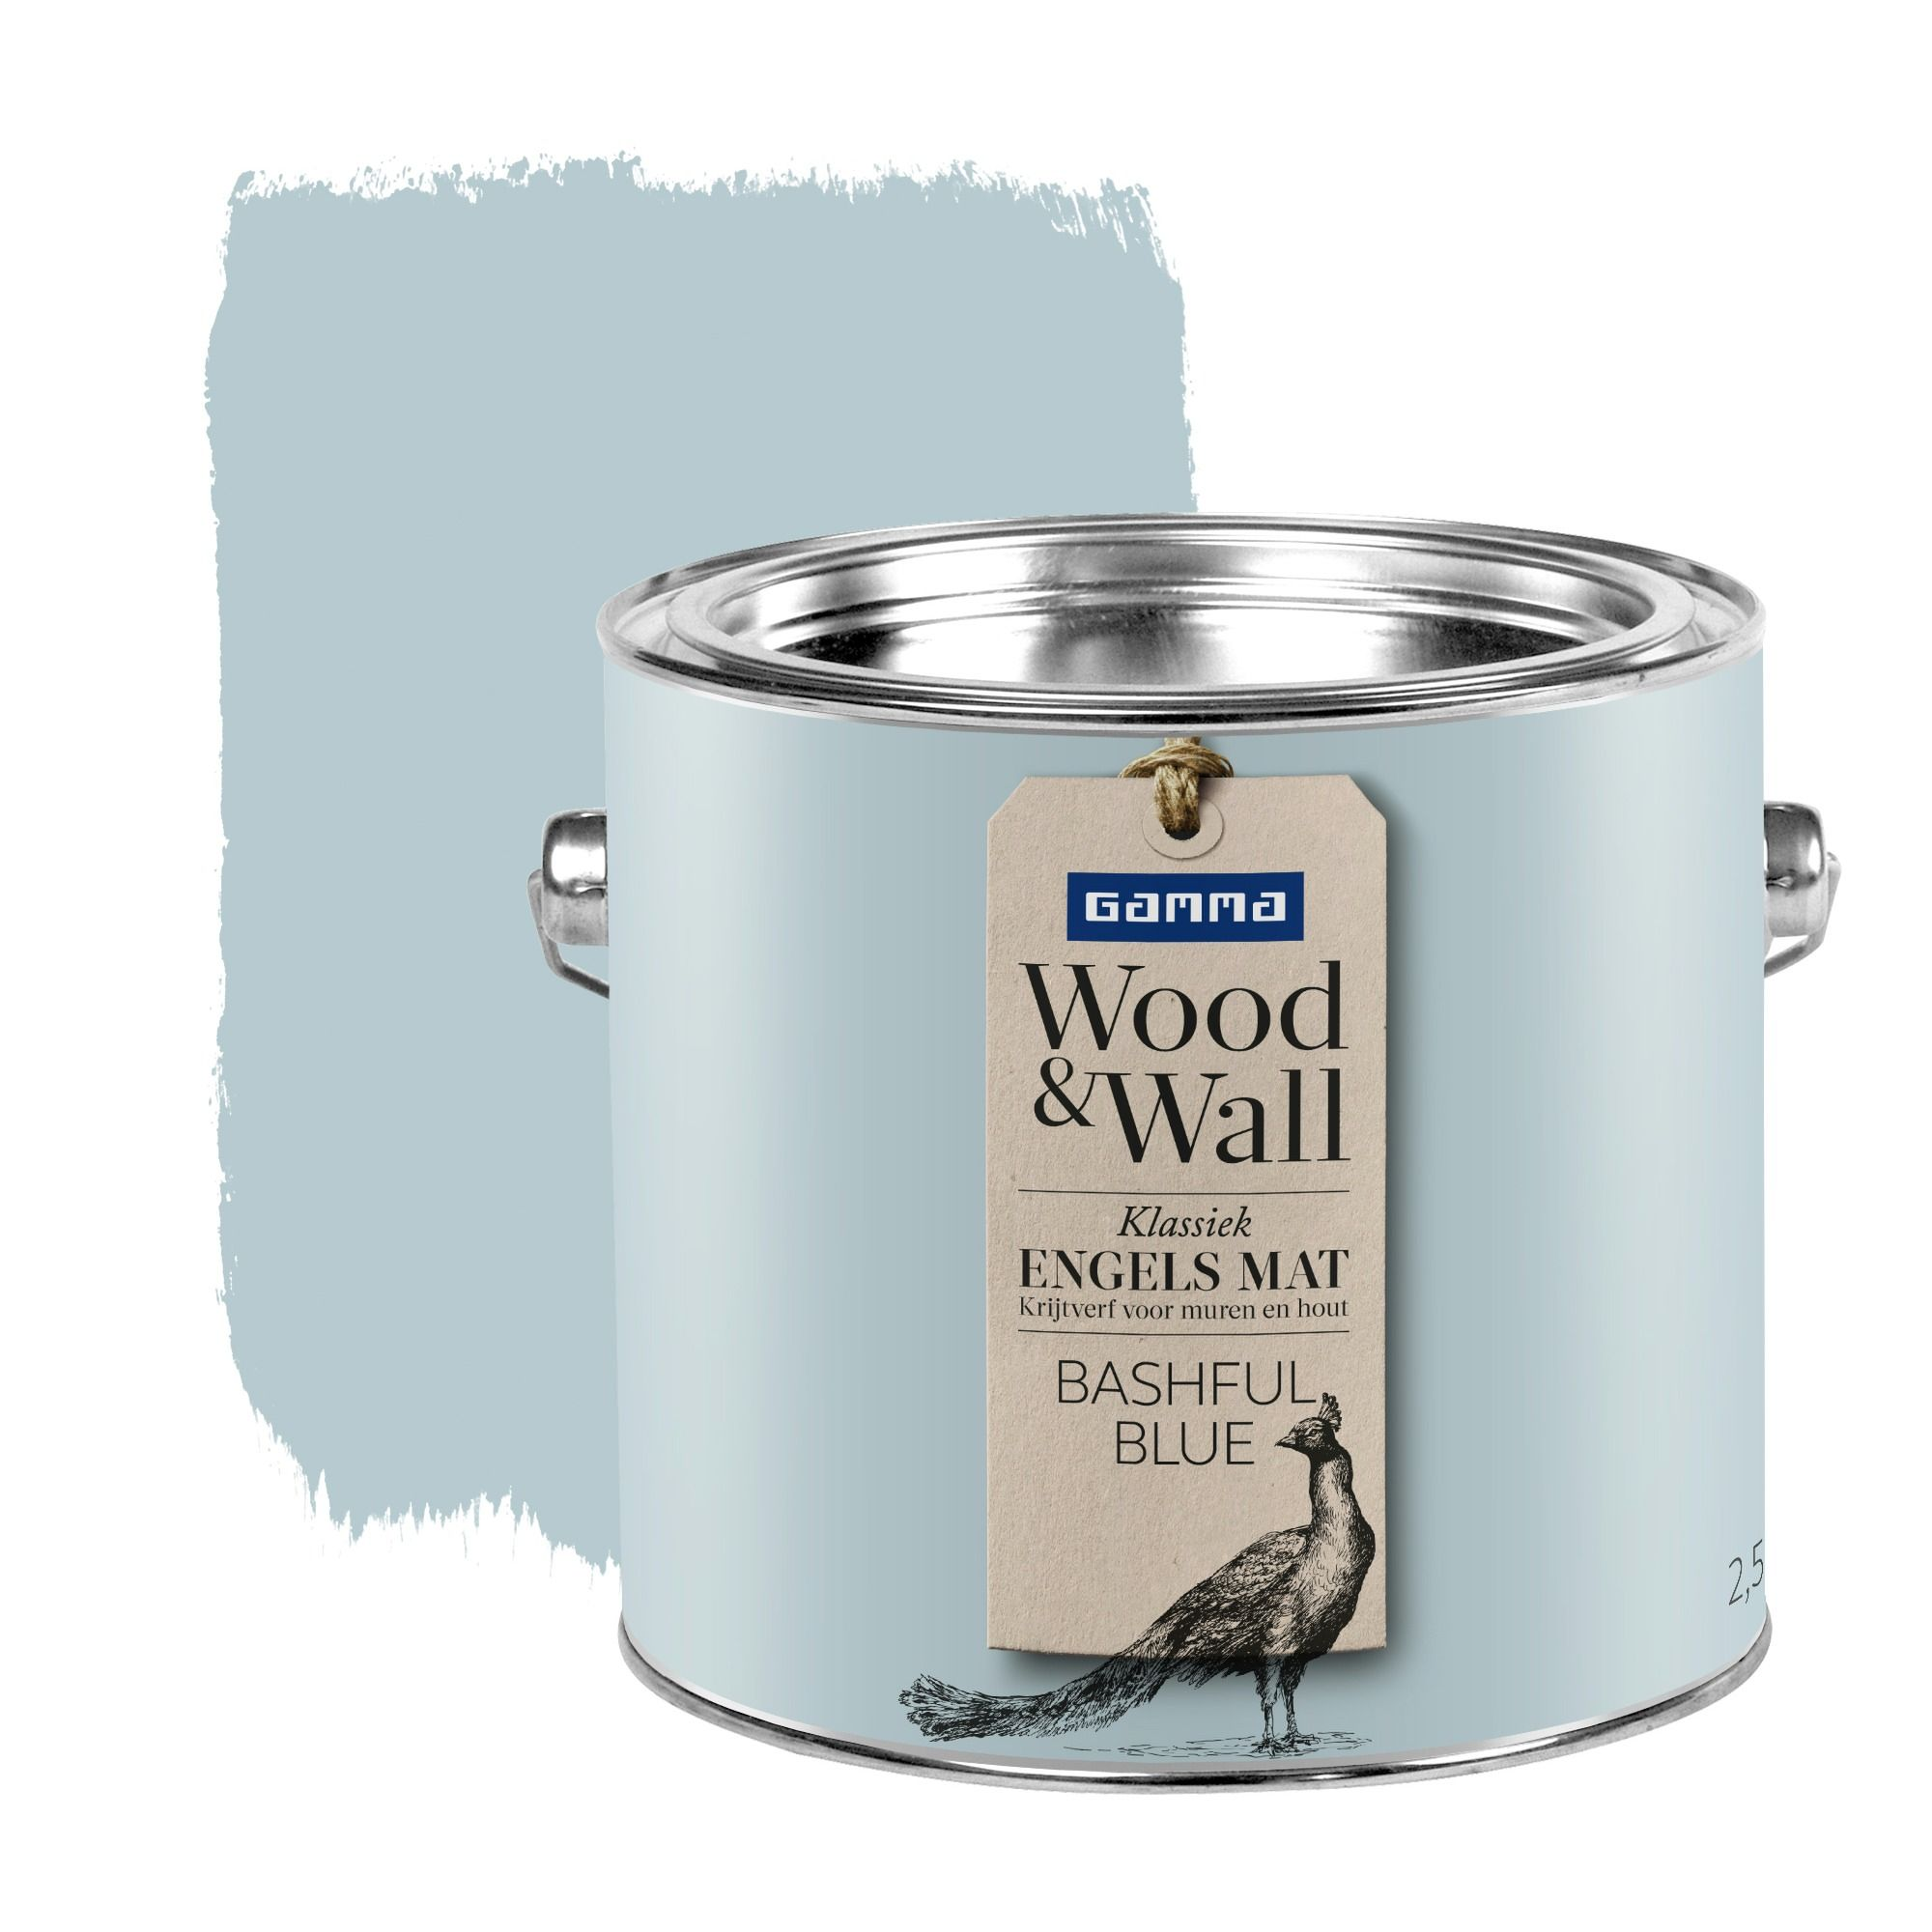 Gamma Verf Wit Gamma Wood Wall Krijtverf Bashful Blue 2 5 Liter Illustration In